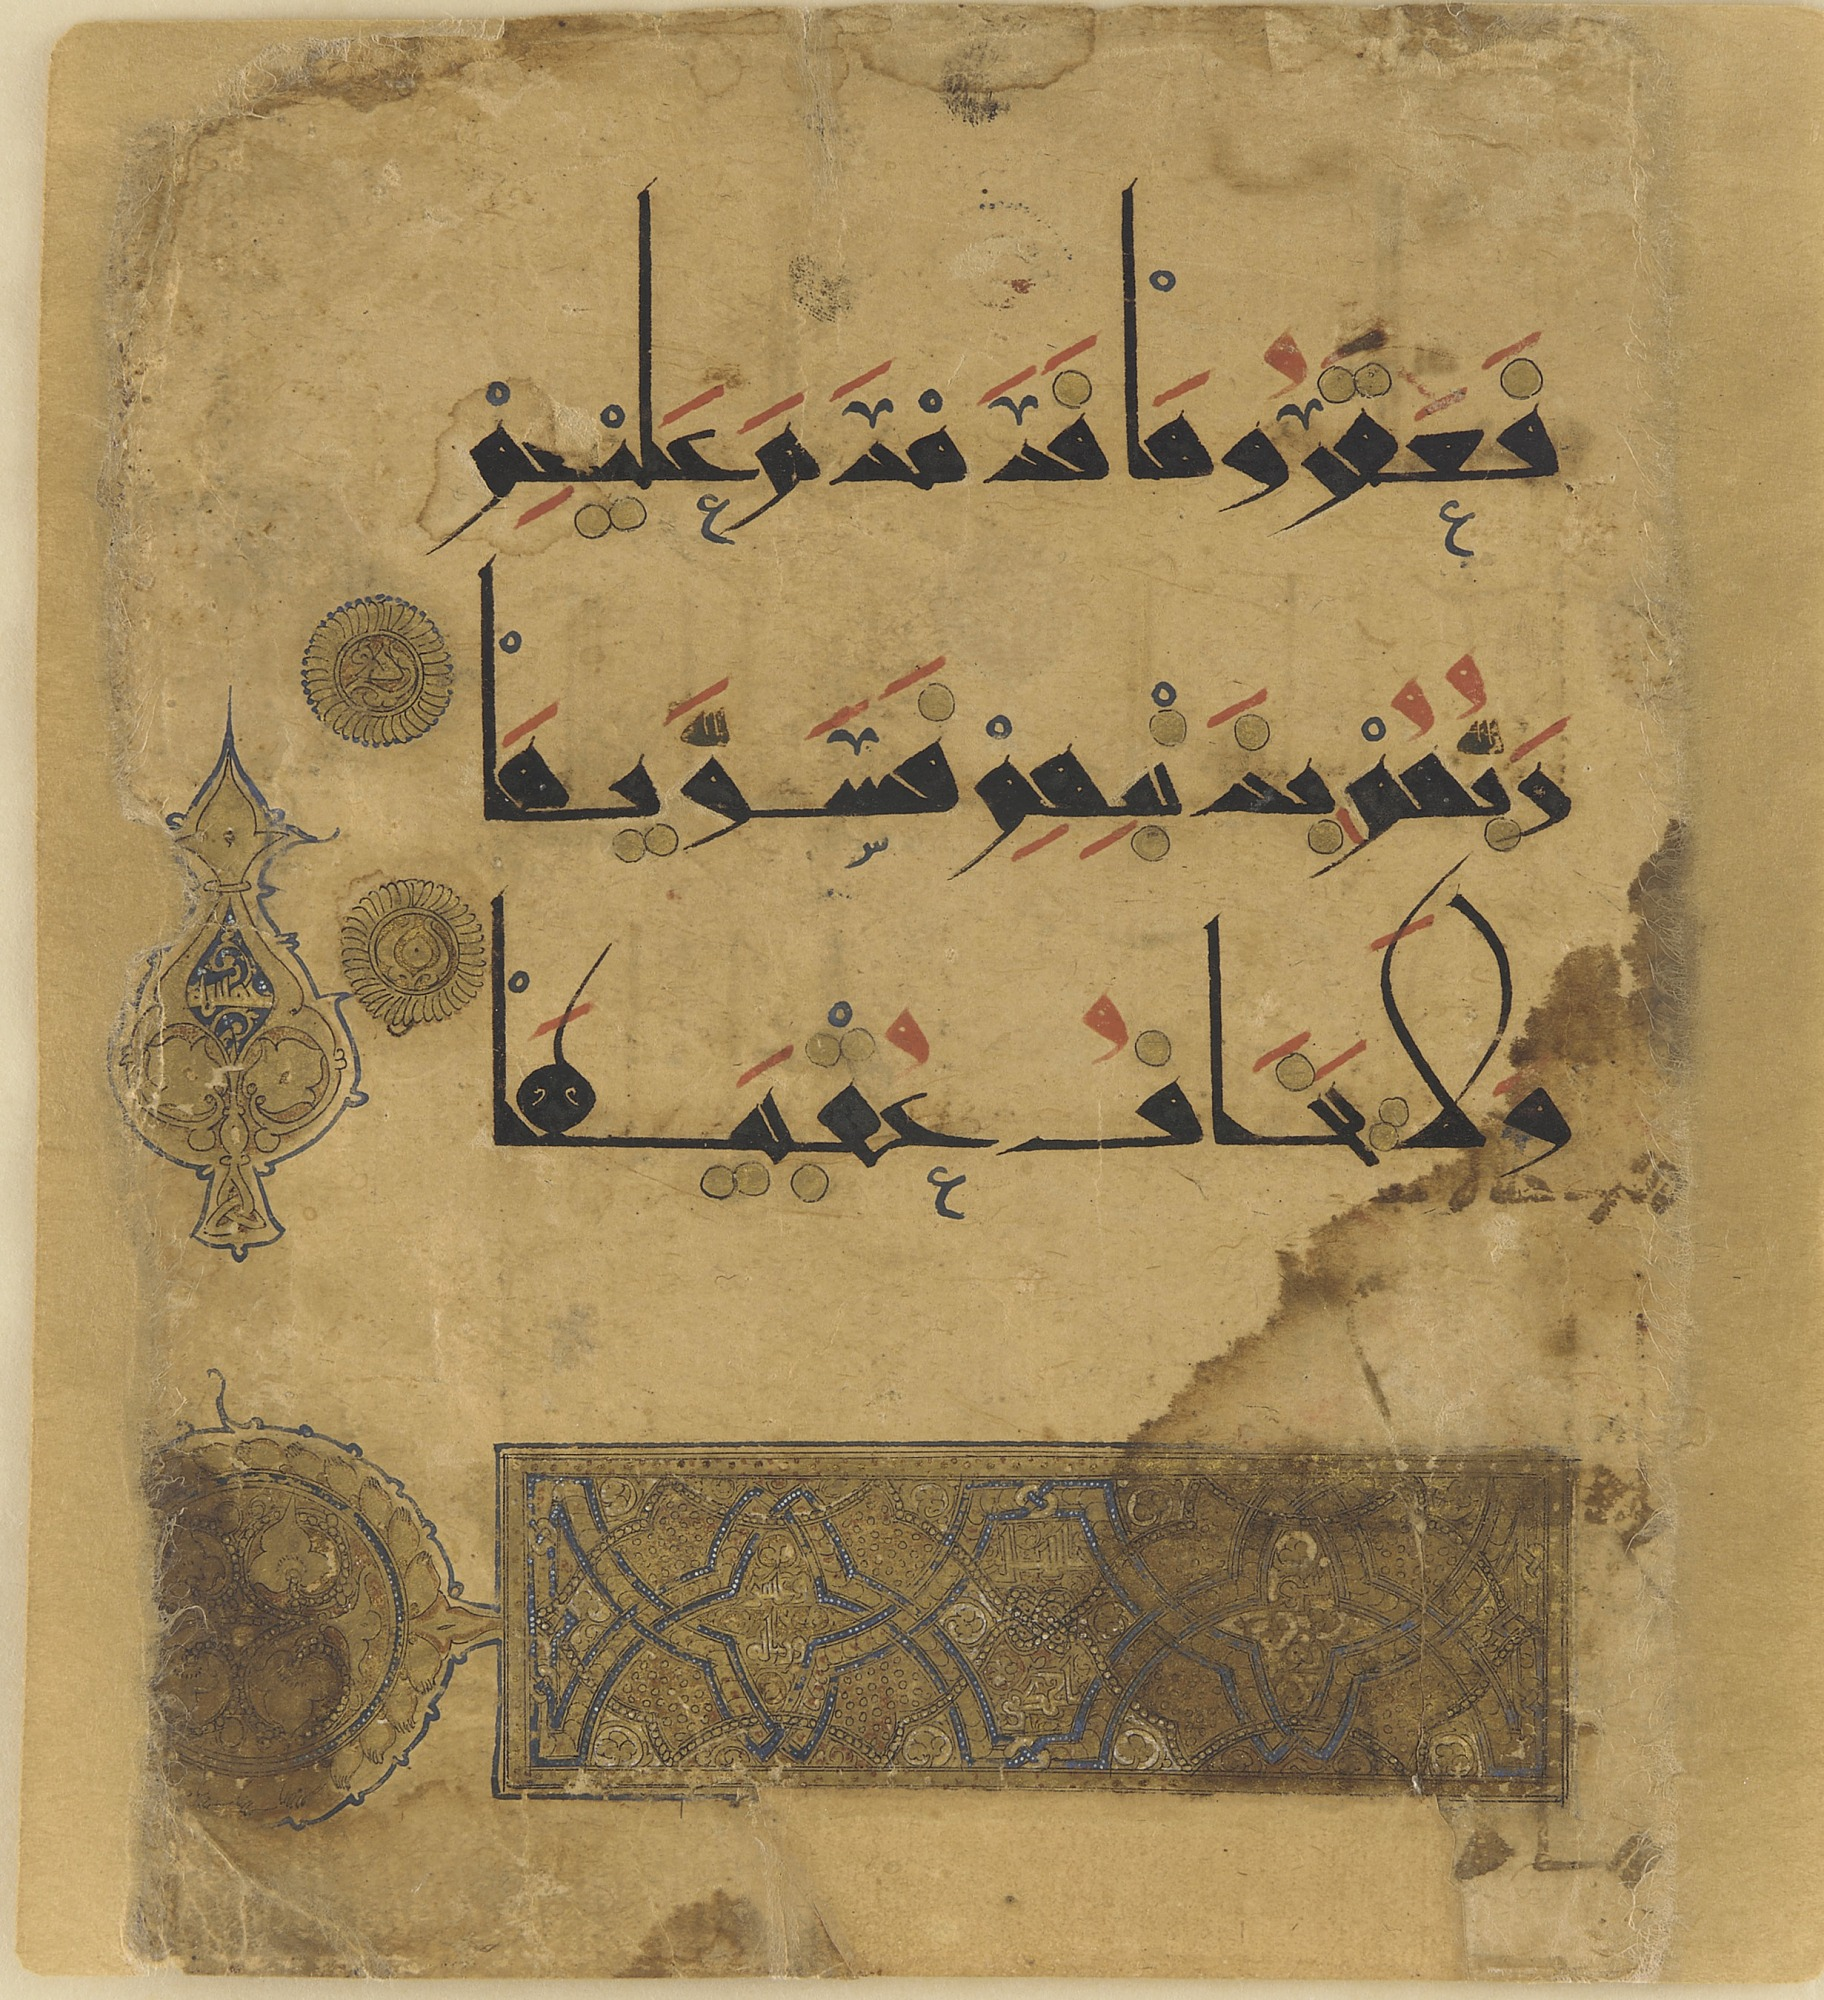 recto: Folio from a Qur'an, sura 91:14-15; sura 92:1-5